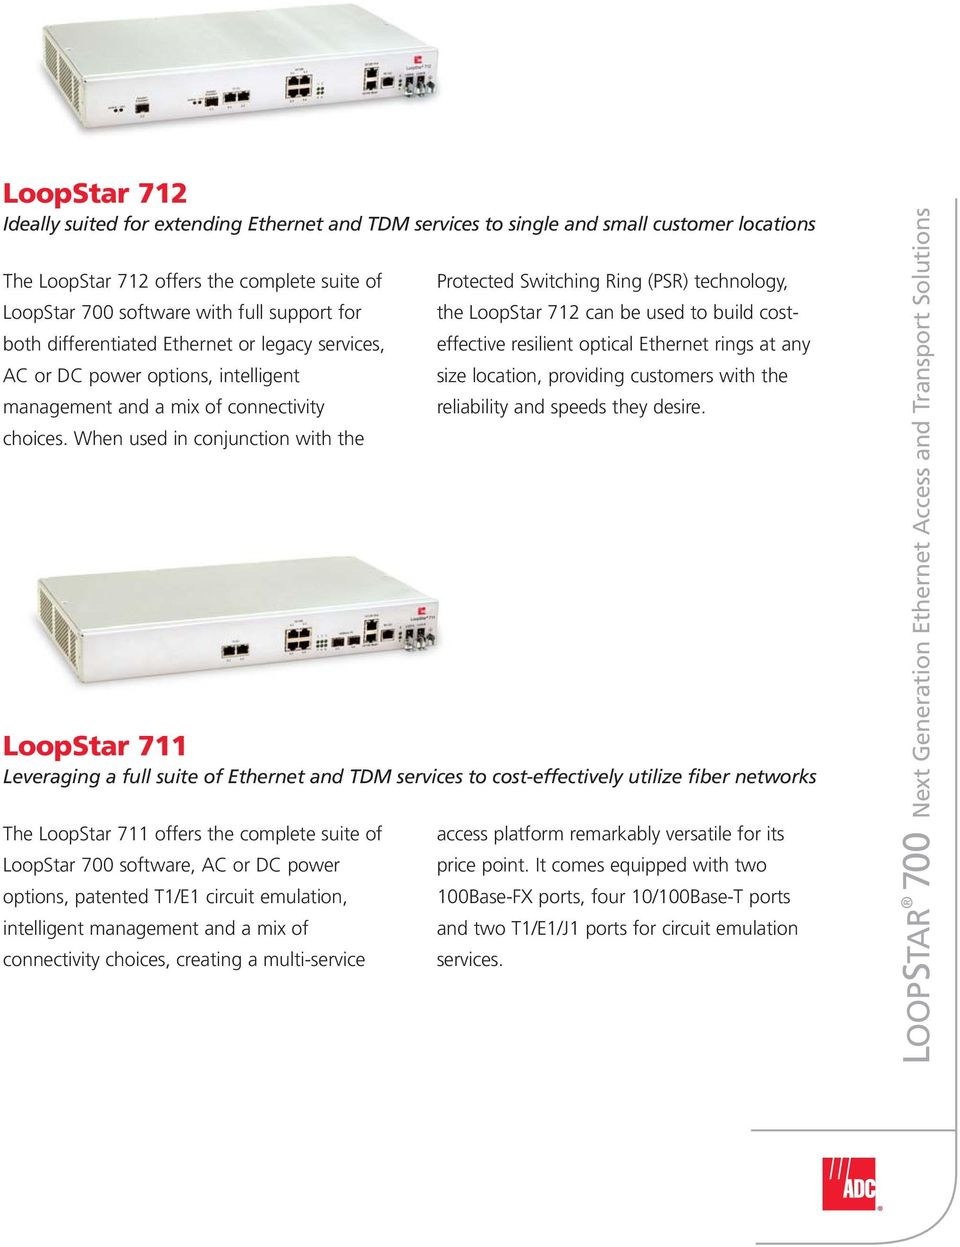 When used in conjunction with the The LoopStar 711 offers the complete suite of LoopStar 700 software, AC or DC power options, patented T1/E1 circuit emulation, intelligent management and a mix of